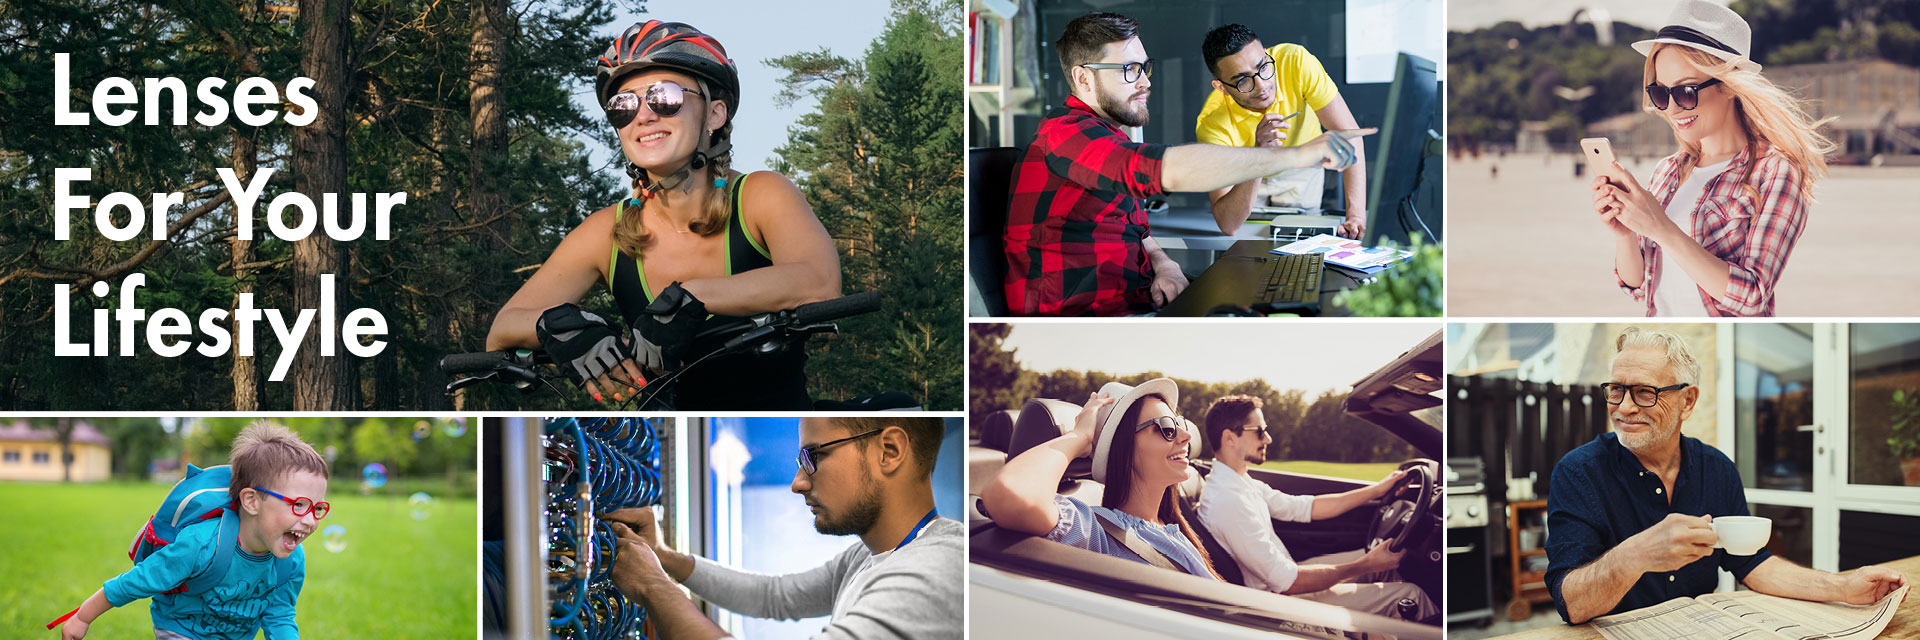 Lenses For Your Lifestyle - - Optimum RX Lens Specialists